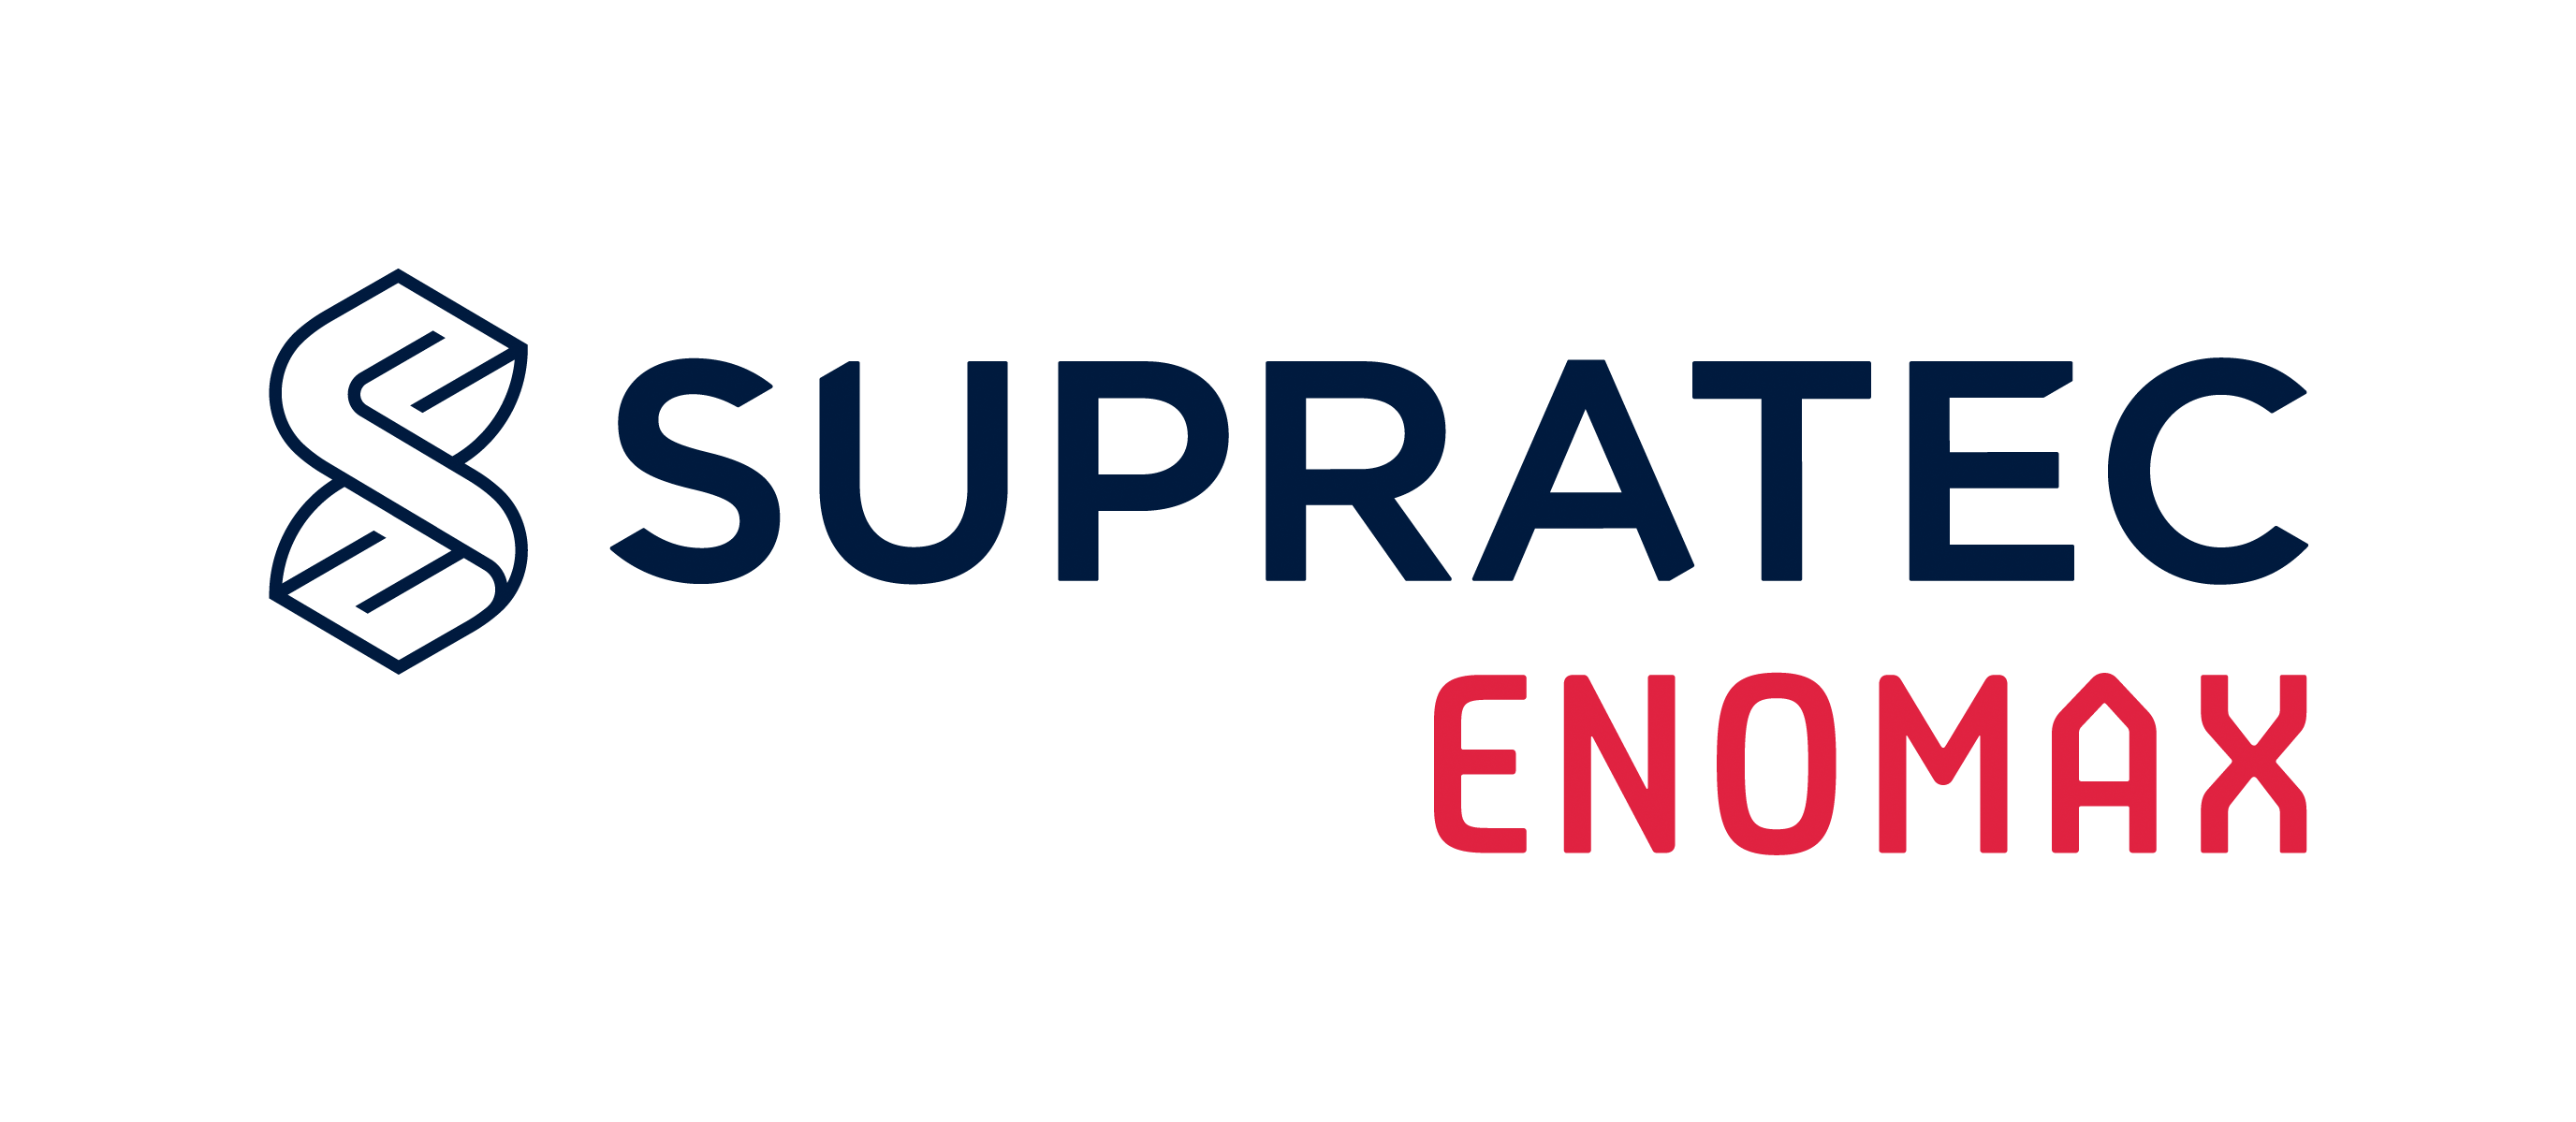 the brand SUPRATEC Enomax